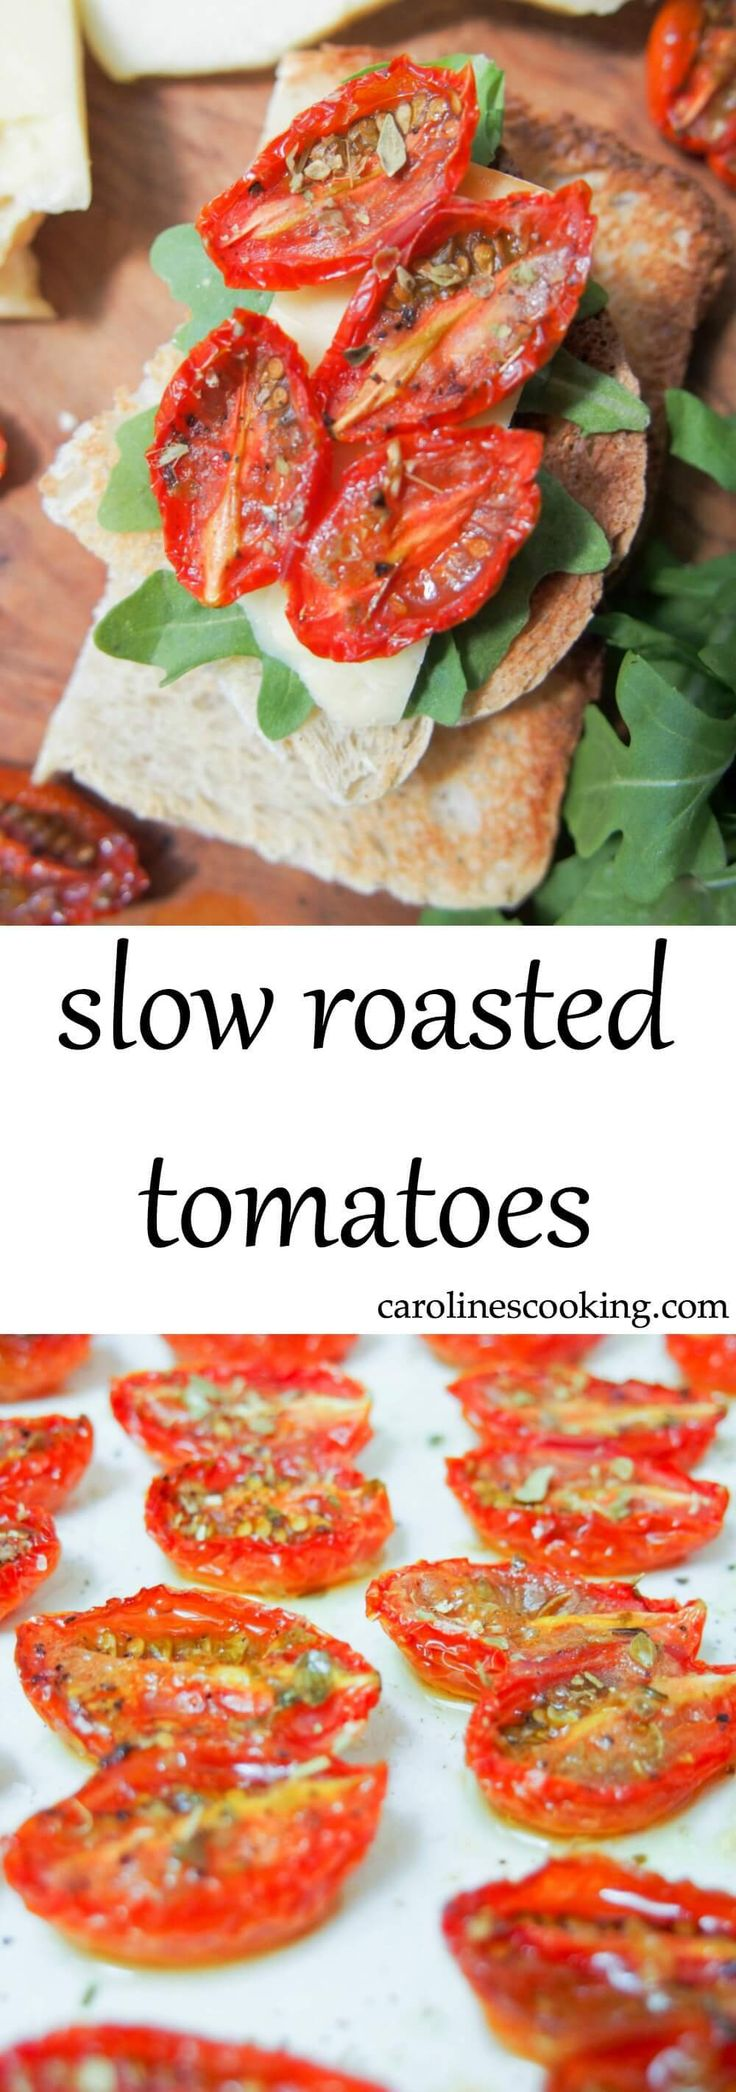 slow roasted tomatoes - Intensely tomato-ey without being overpowering, gently dried but still juicy inside, these slow roasted tomatoes make such a delicious little bite. Great to snack on, with cheese and bread or in pasta.